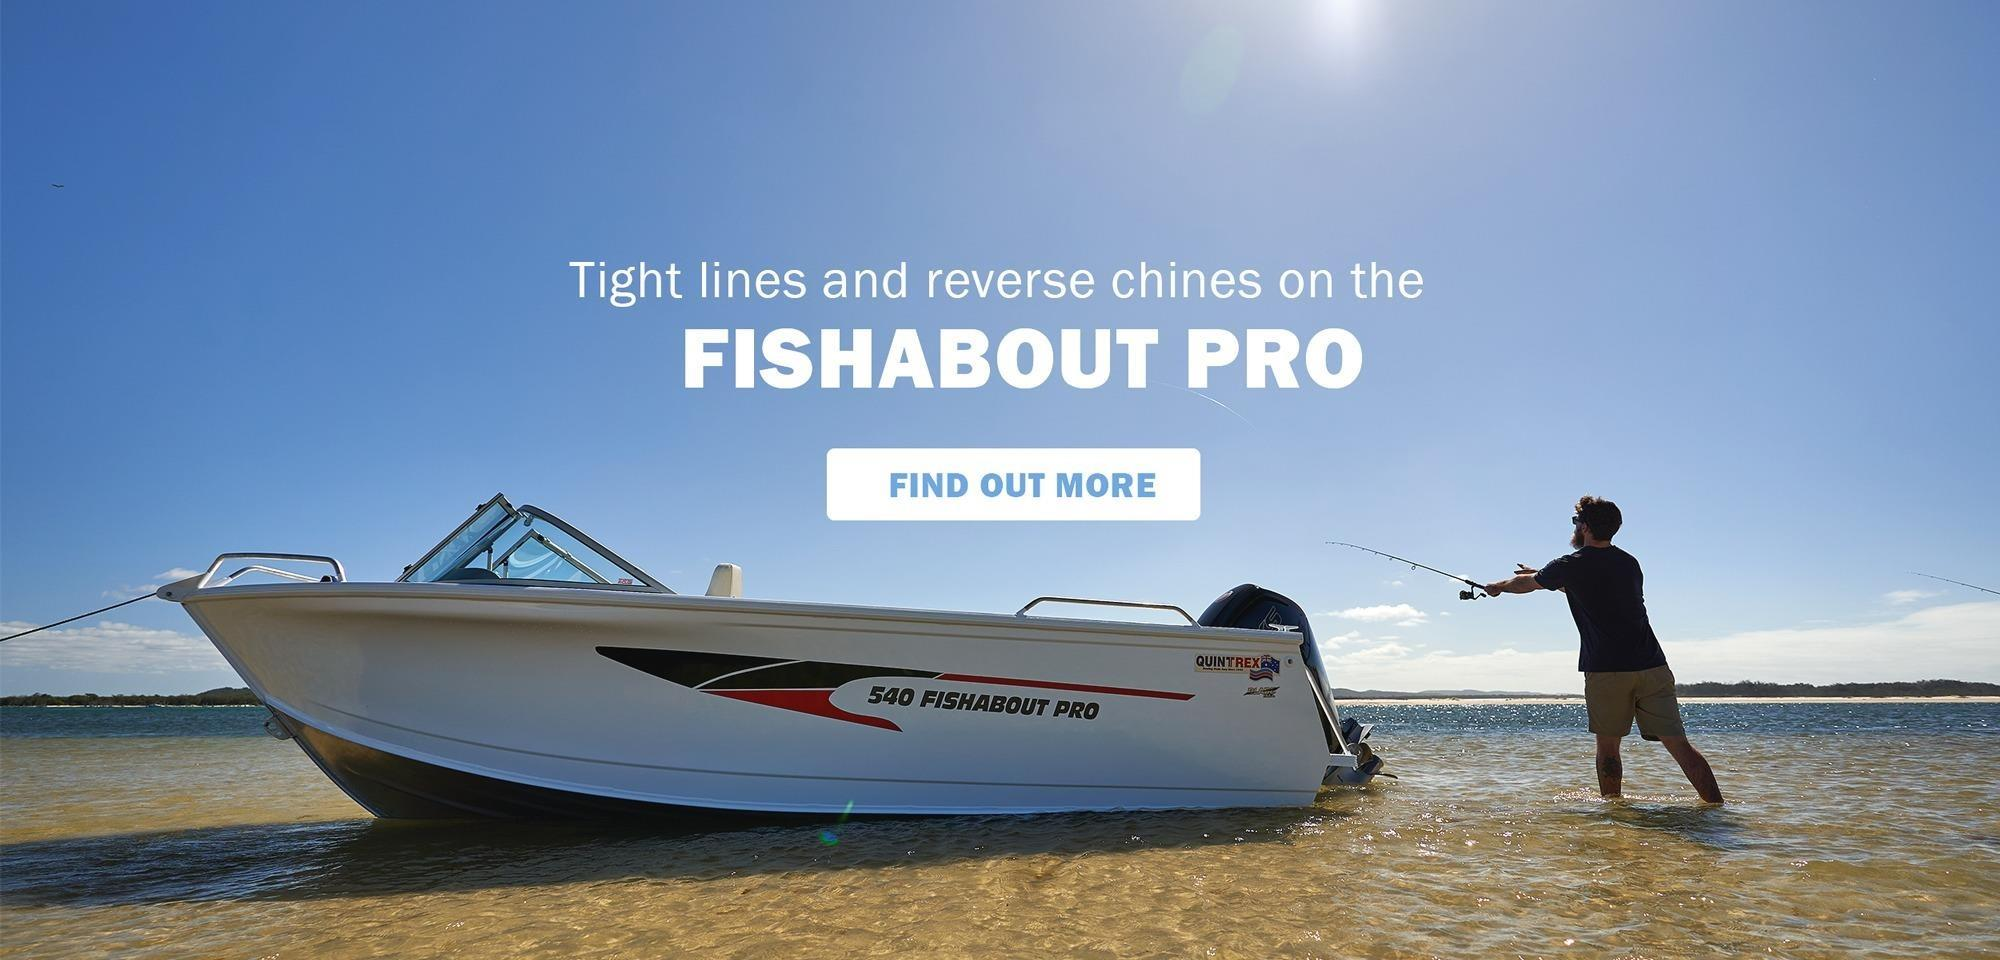 Tight Lines and Reverse Chines Fishabout Pro